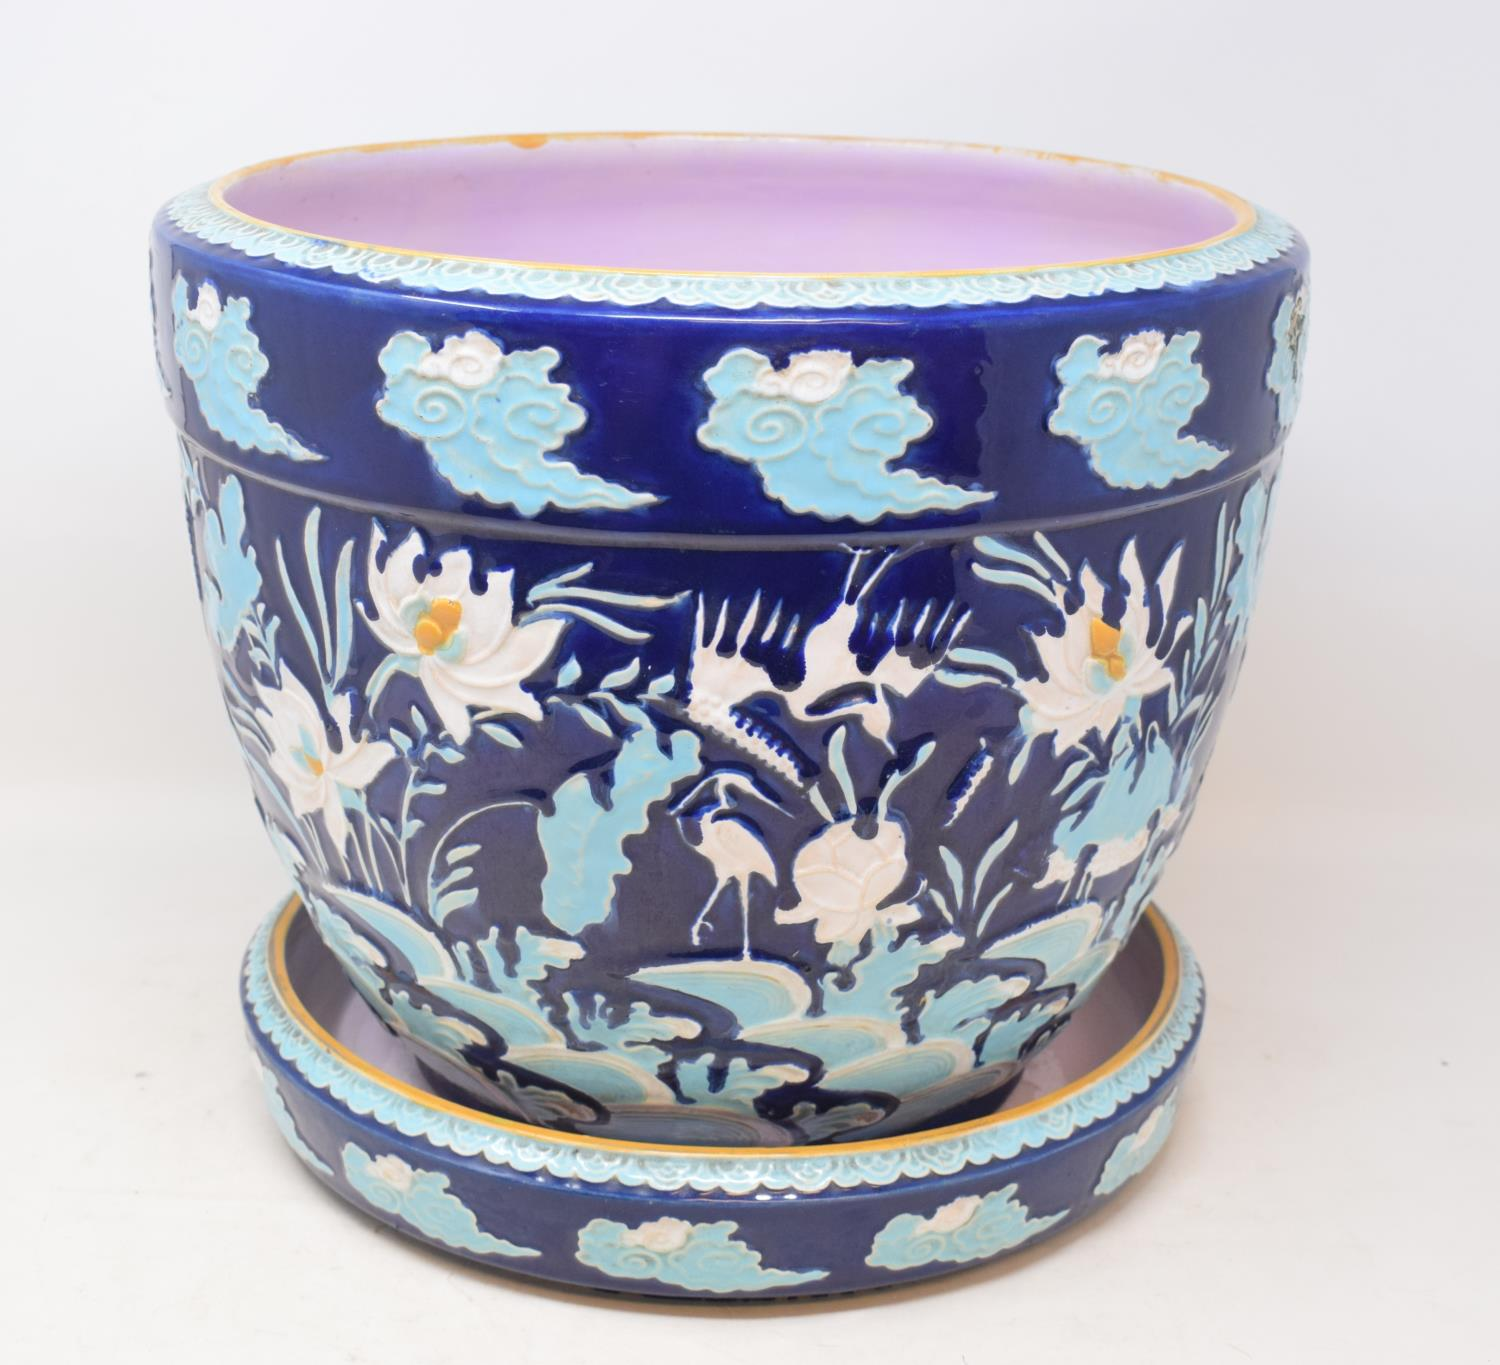 Lot 31 - A Victorian Minton majolica jardiniere on stand, with Japanese style decoration, slight damage, 28